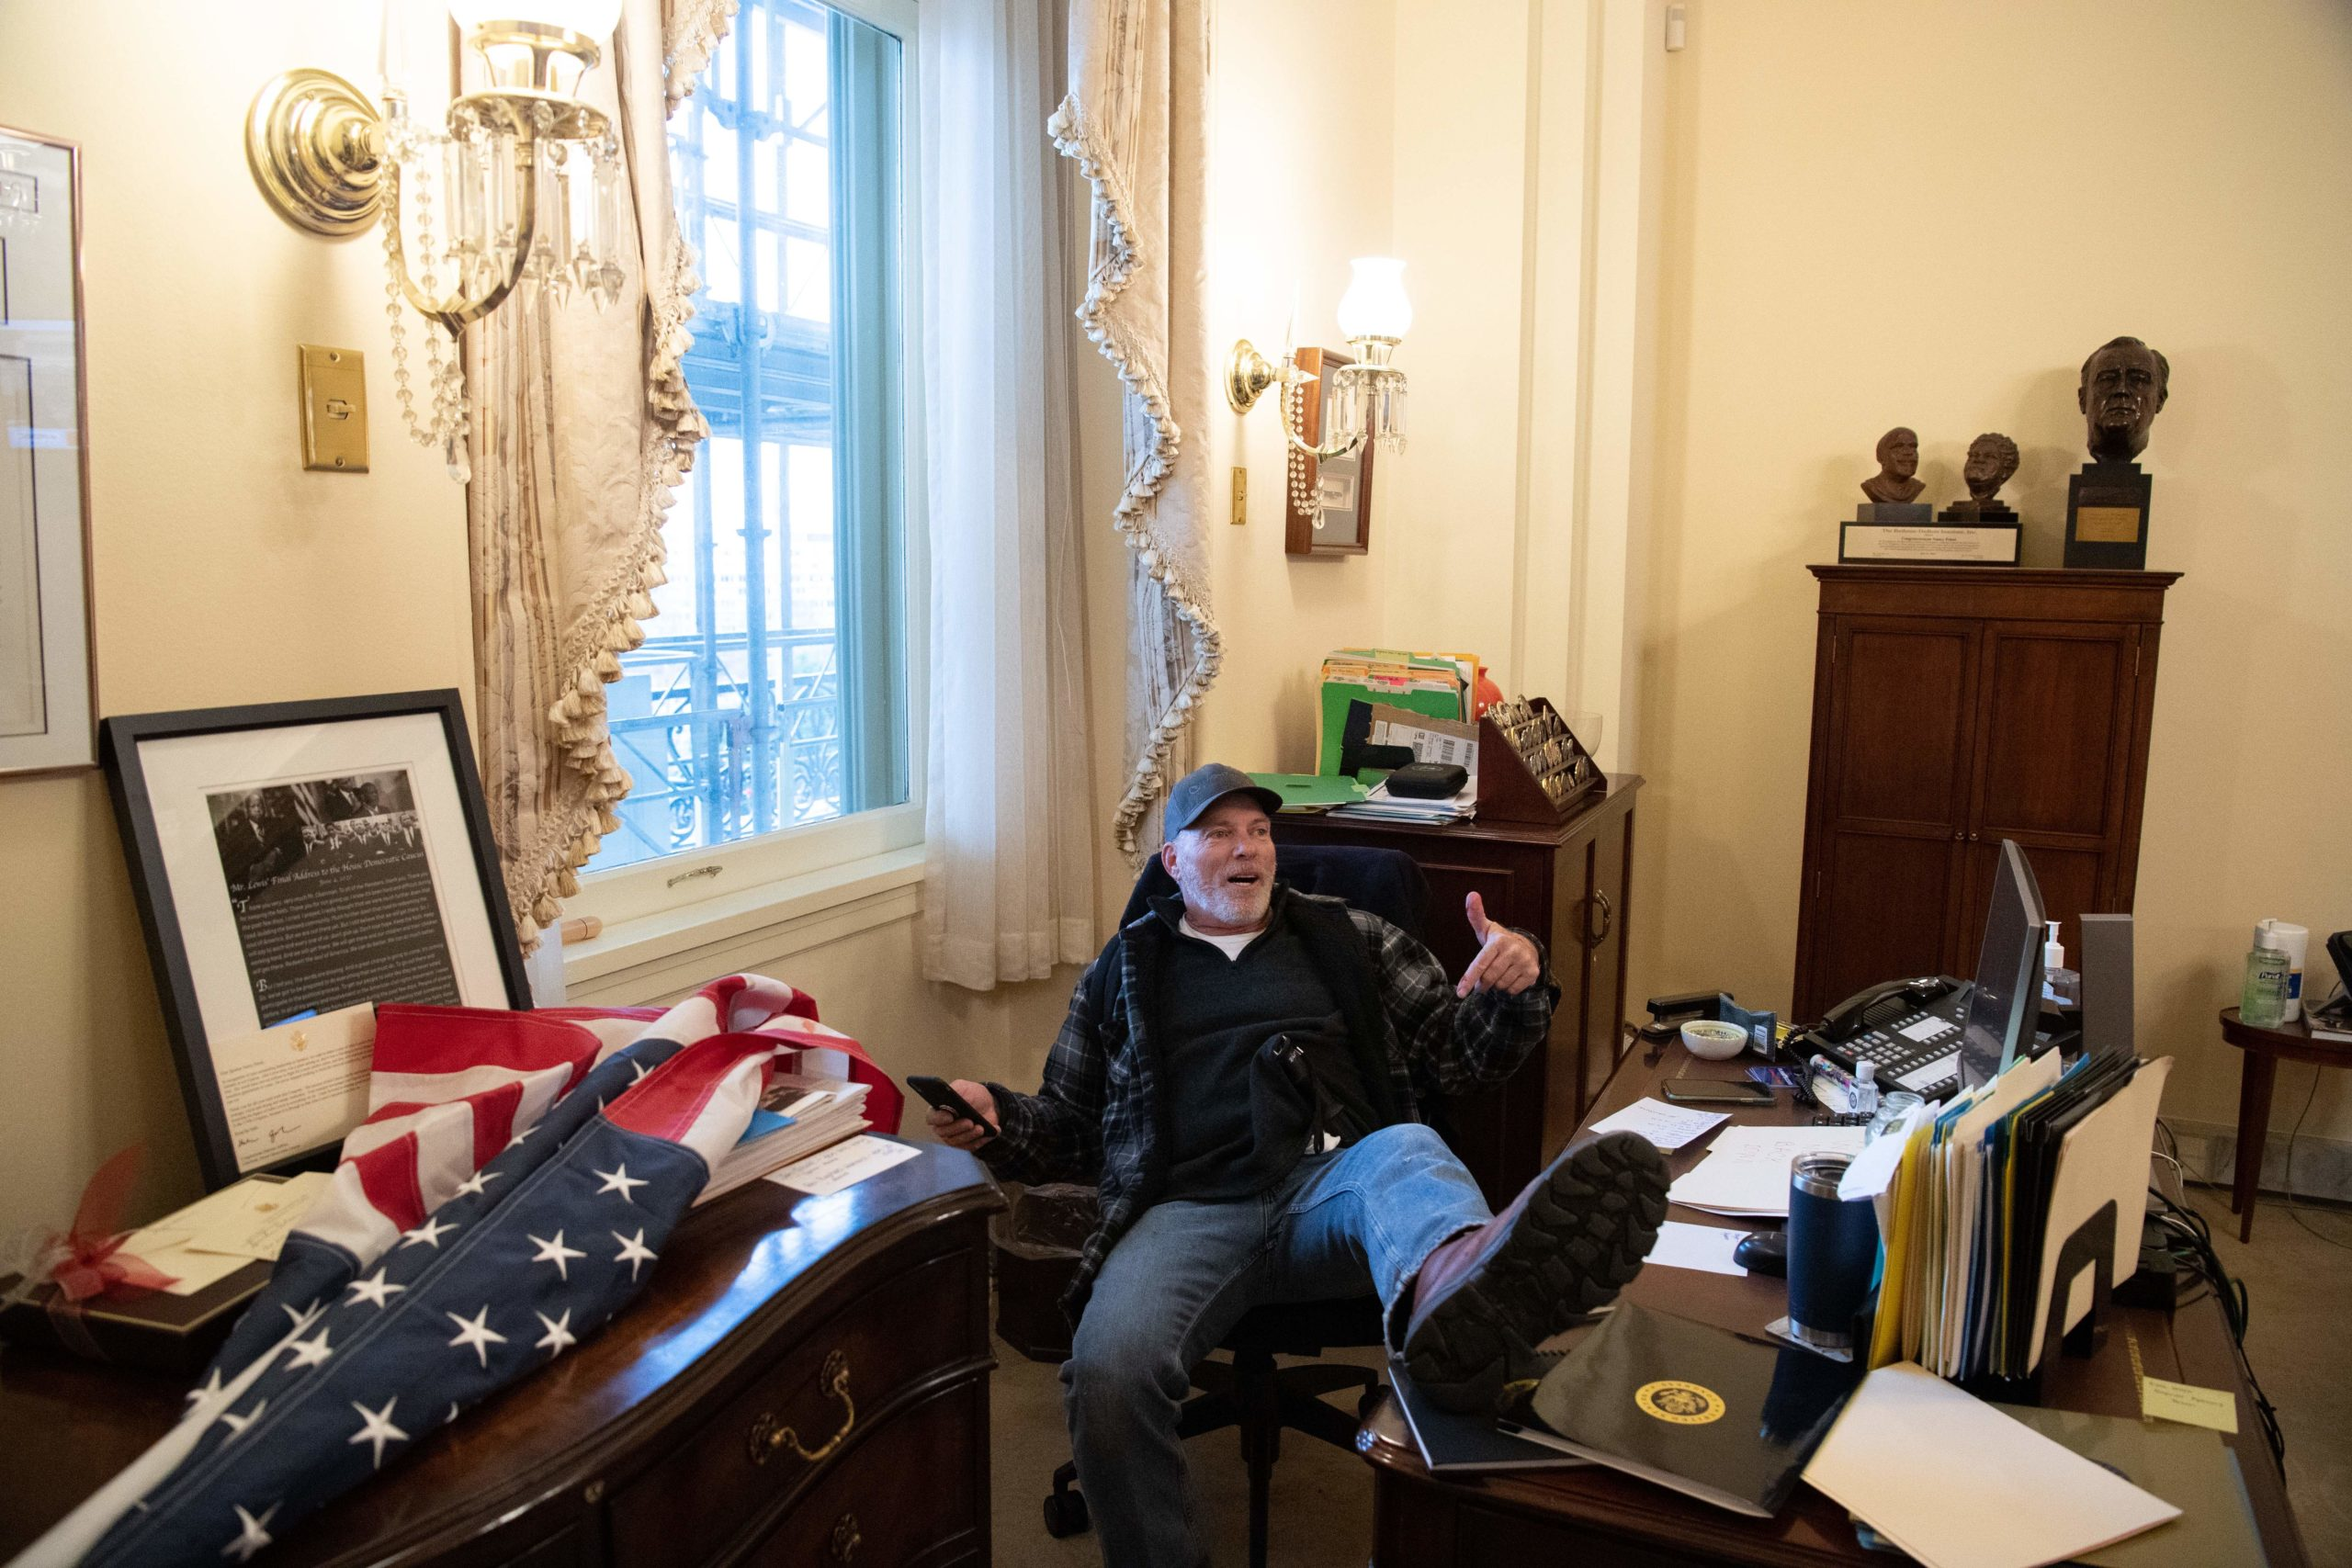 A supporter of US President Donald Trump sits inside the office of US Speaker of the House Nancy Pelosi as he protest inside the US Capitol in Washington, DC, January 6, 2021. - Demonstrators breeched security and entered the Capitol as Congress debated the a 2020 presidential election Electoral Vote Certification. (Photo by Saul Loeb/AFP via Getty Images)